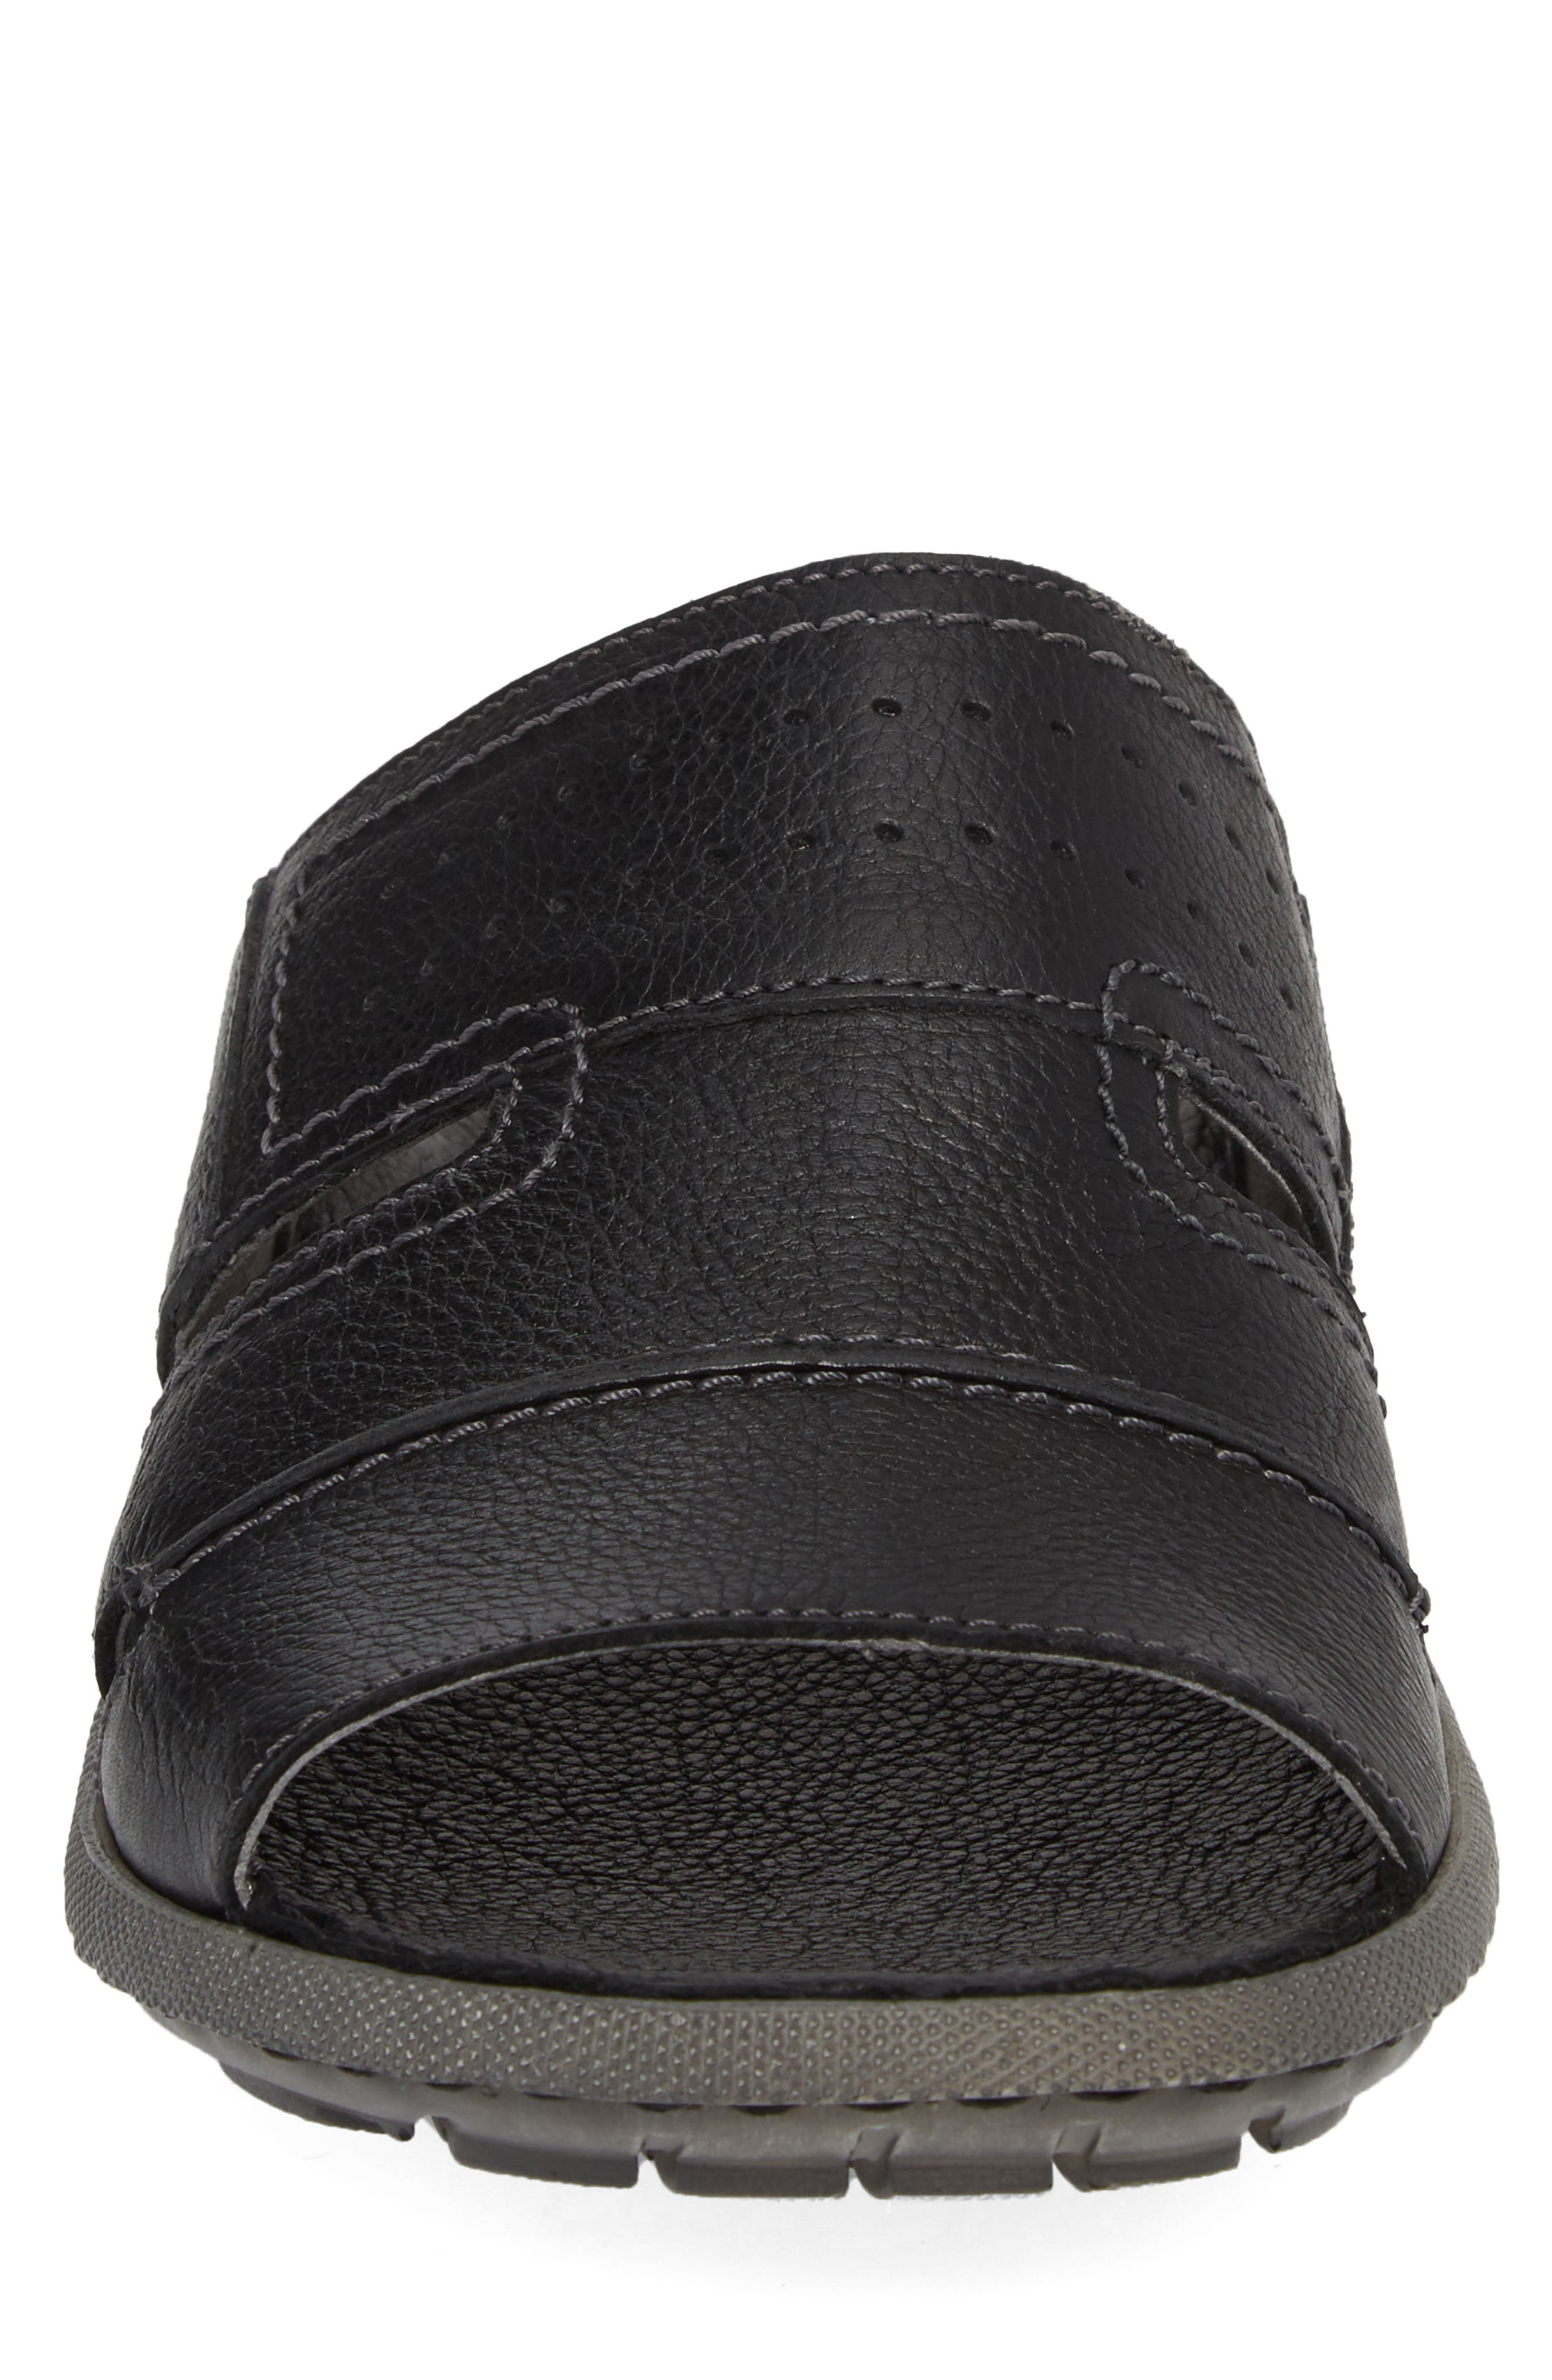 Logan Slide Sandal,                             Alternate thumbnail 4, color,                             004